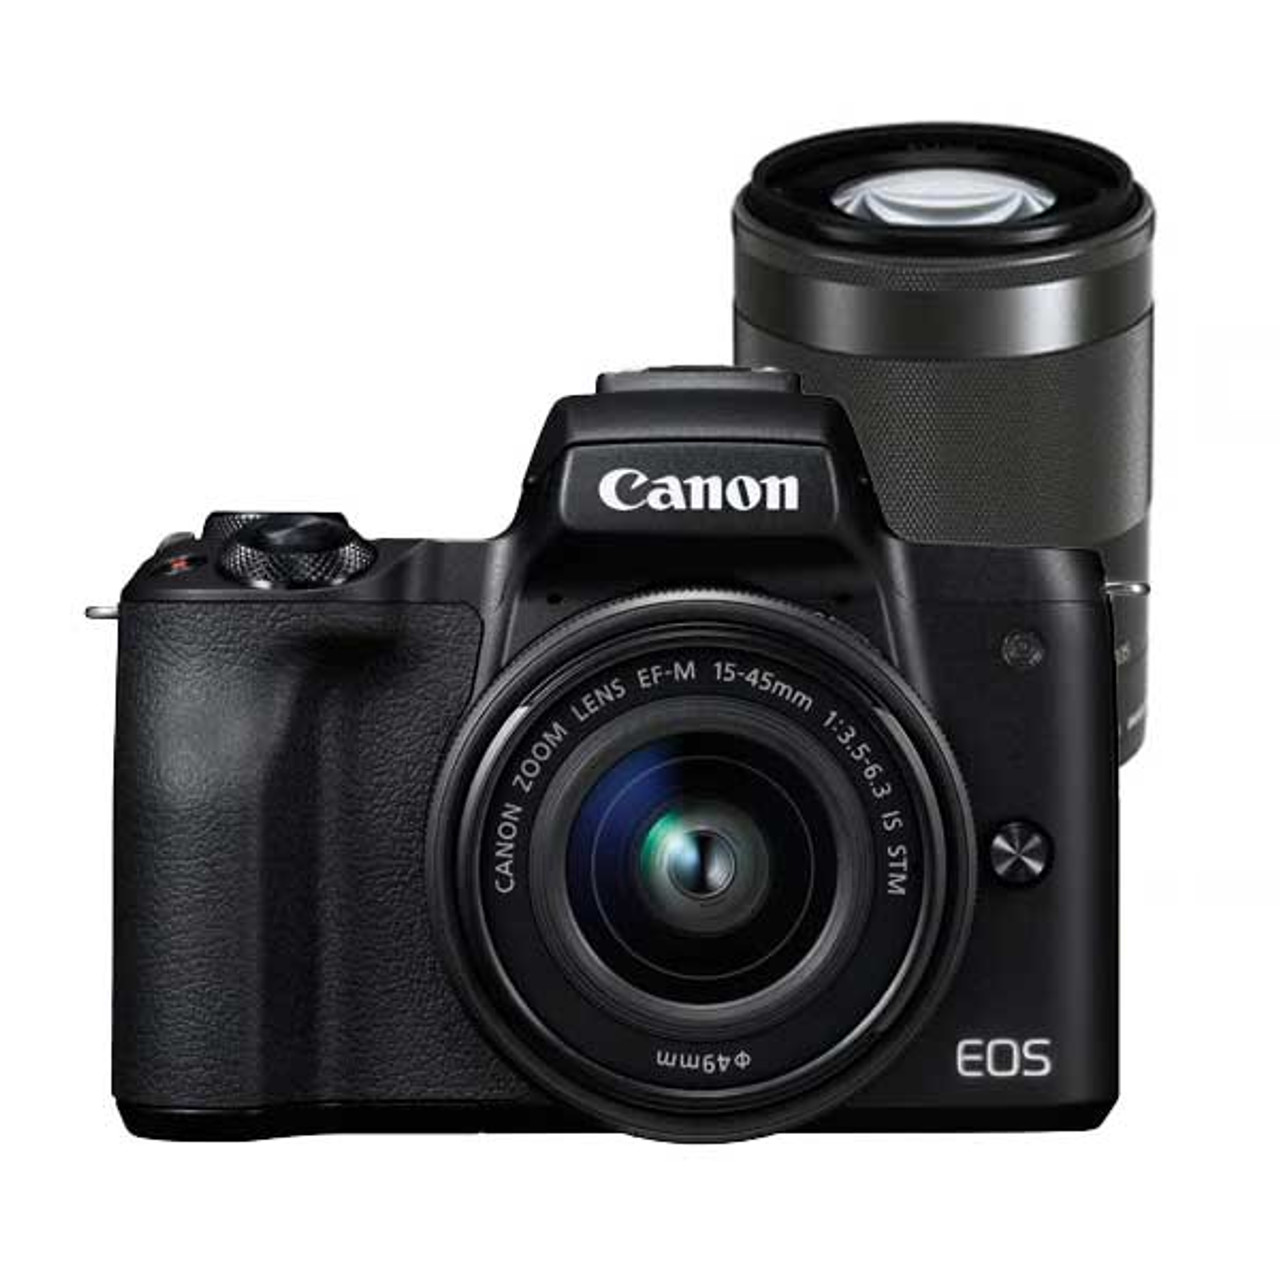 Canon EOS M50 15-45mm Kit Black & Canon EF-M 55-200mm F4.5-6.3 IS STM